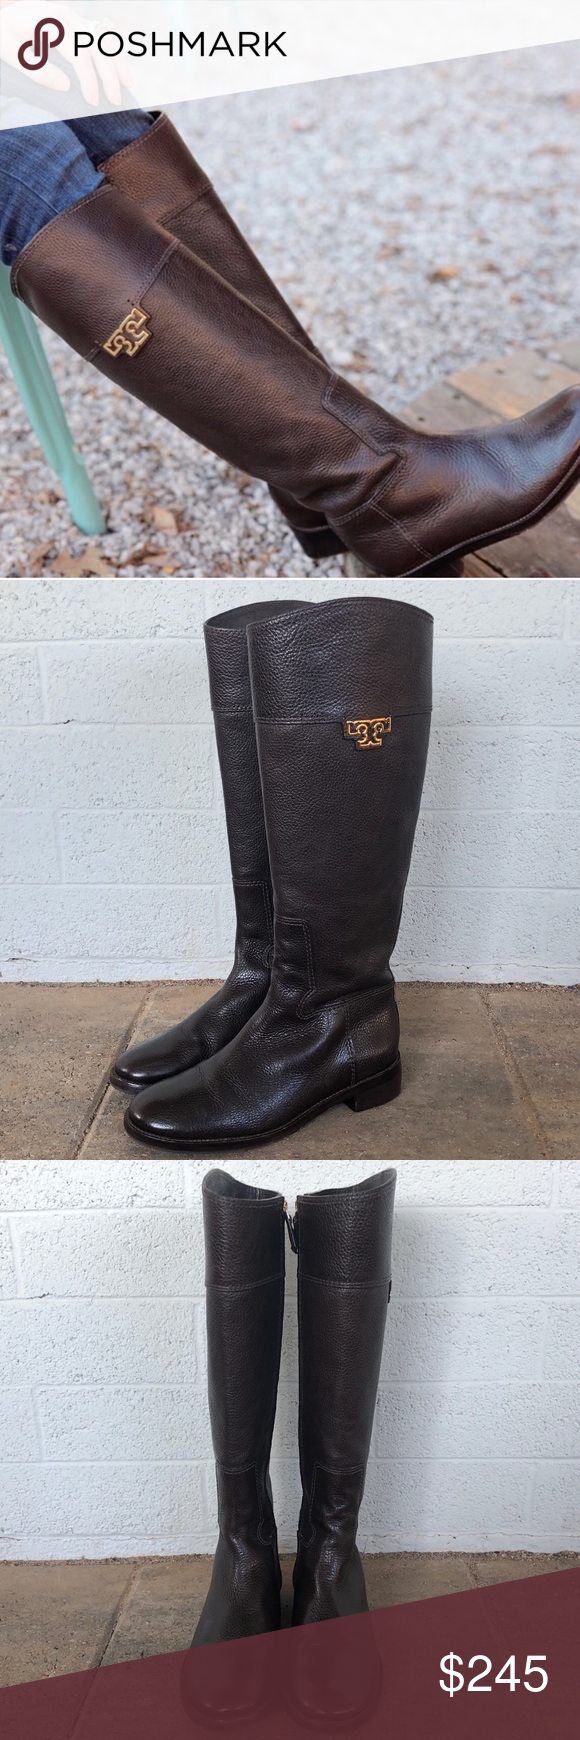 5b3391307f32 Tory Burch Joanna Riding Boot size 8 Tory Burch Joanna Riding Boot size 8.  Gently